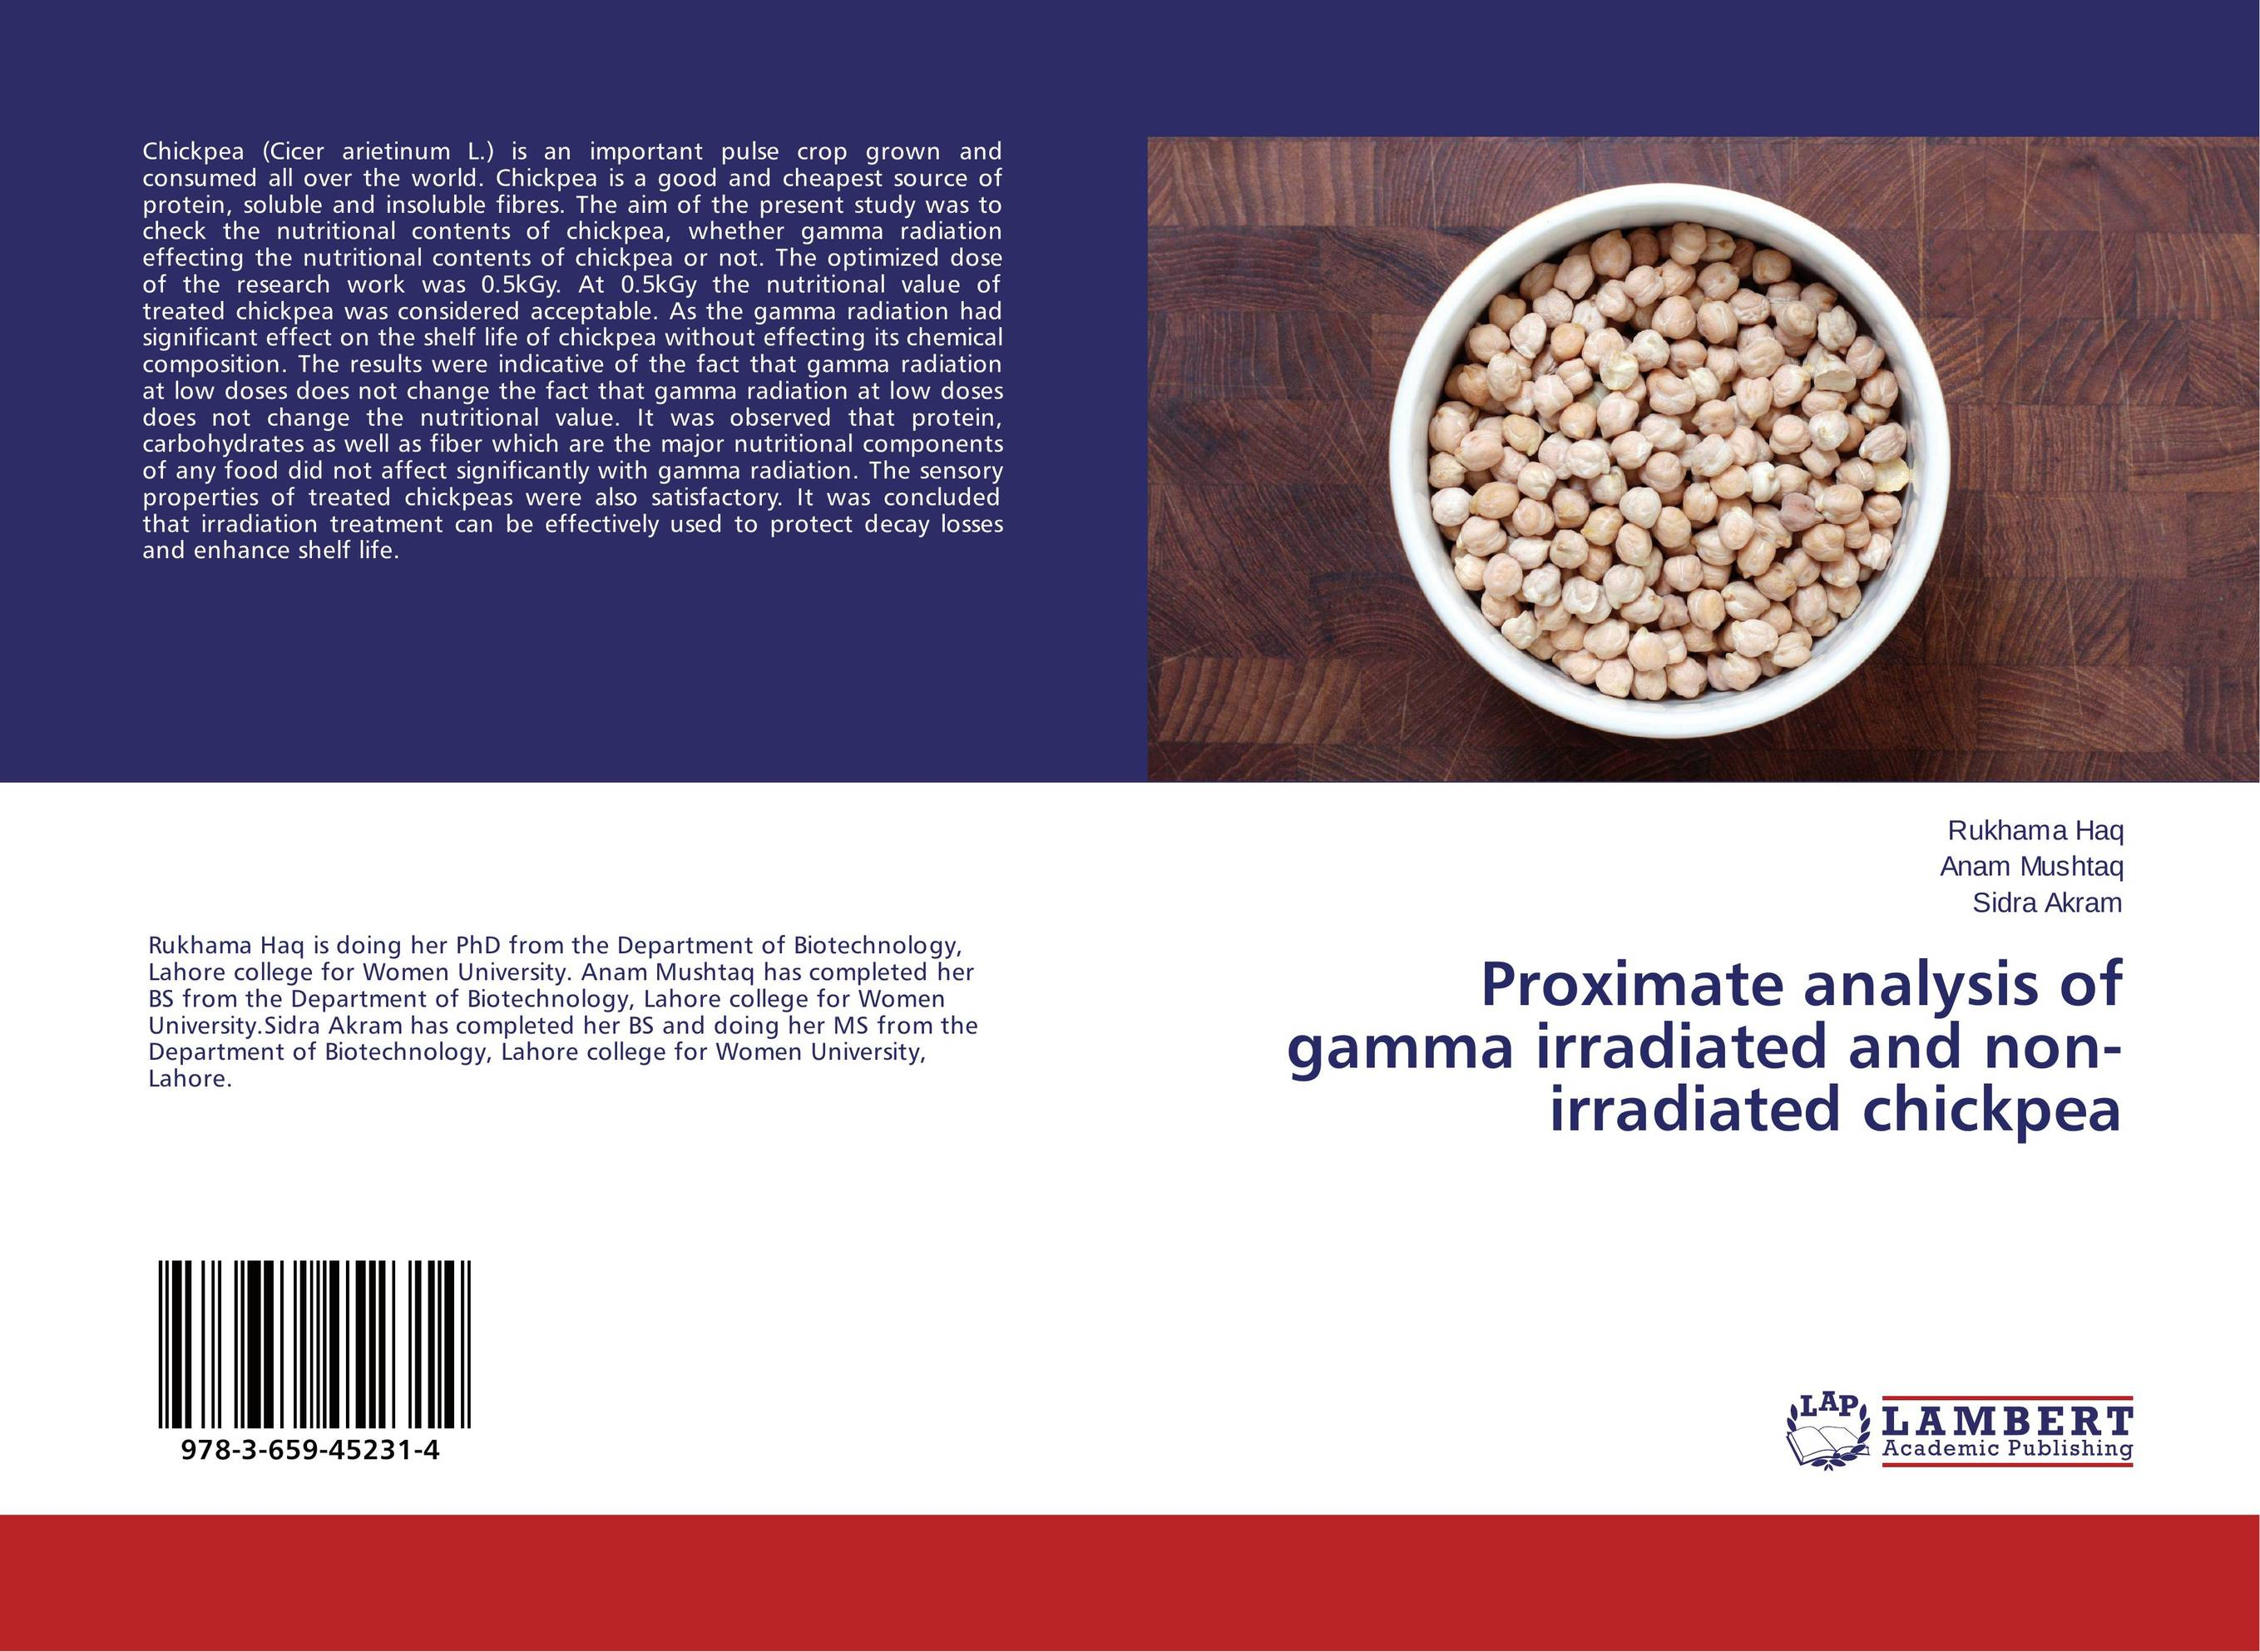 Proximate analysis of gamma irradiated and non-irradiated chickpea effect of gamma irradiation on the proximate of canned tomato paste